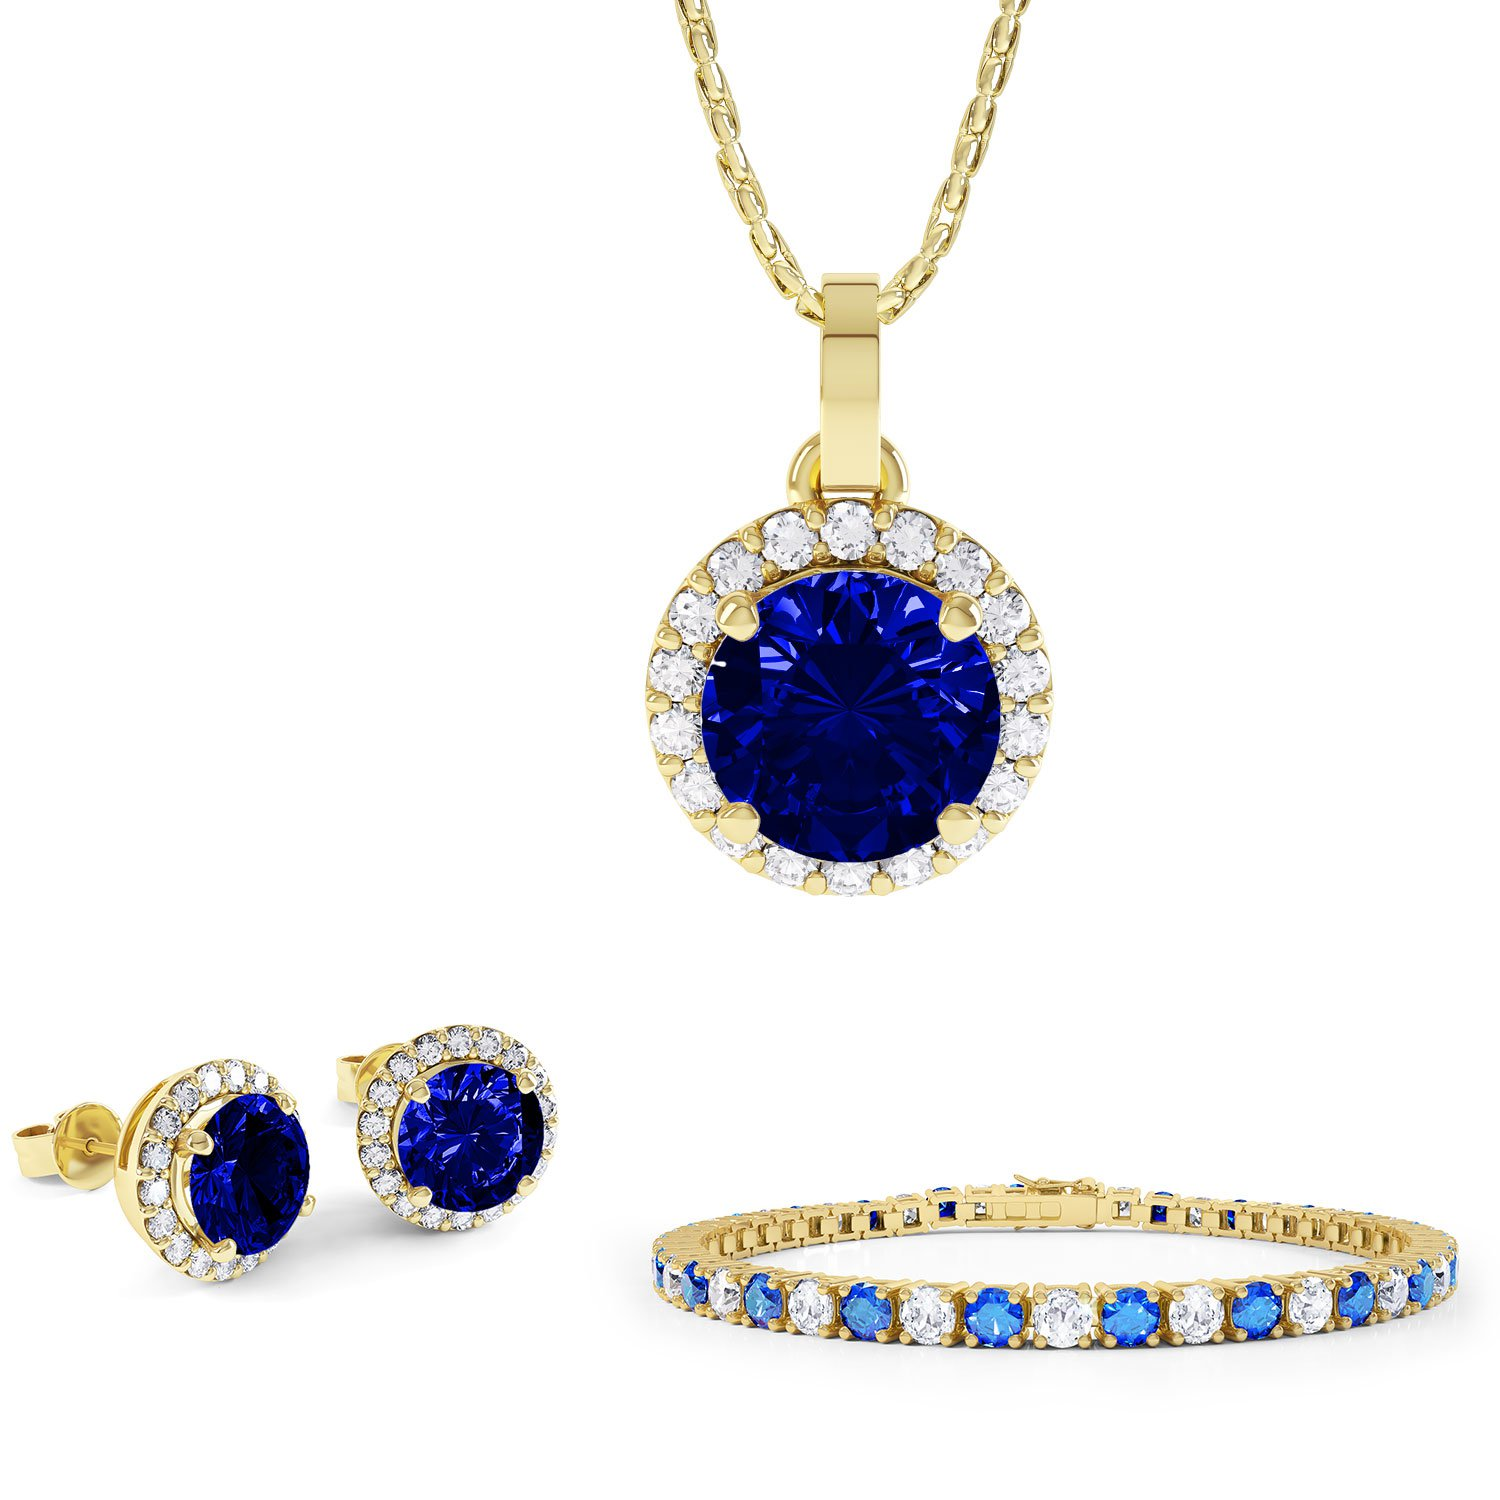 Eternity Sapphire 18ct Gold Vermeil Jewelry Set with Pendant